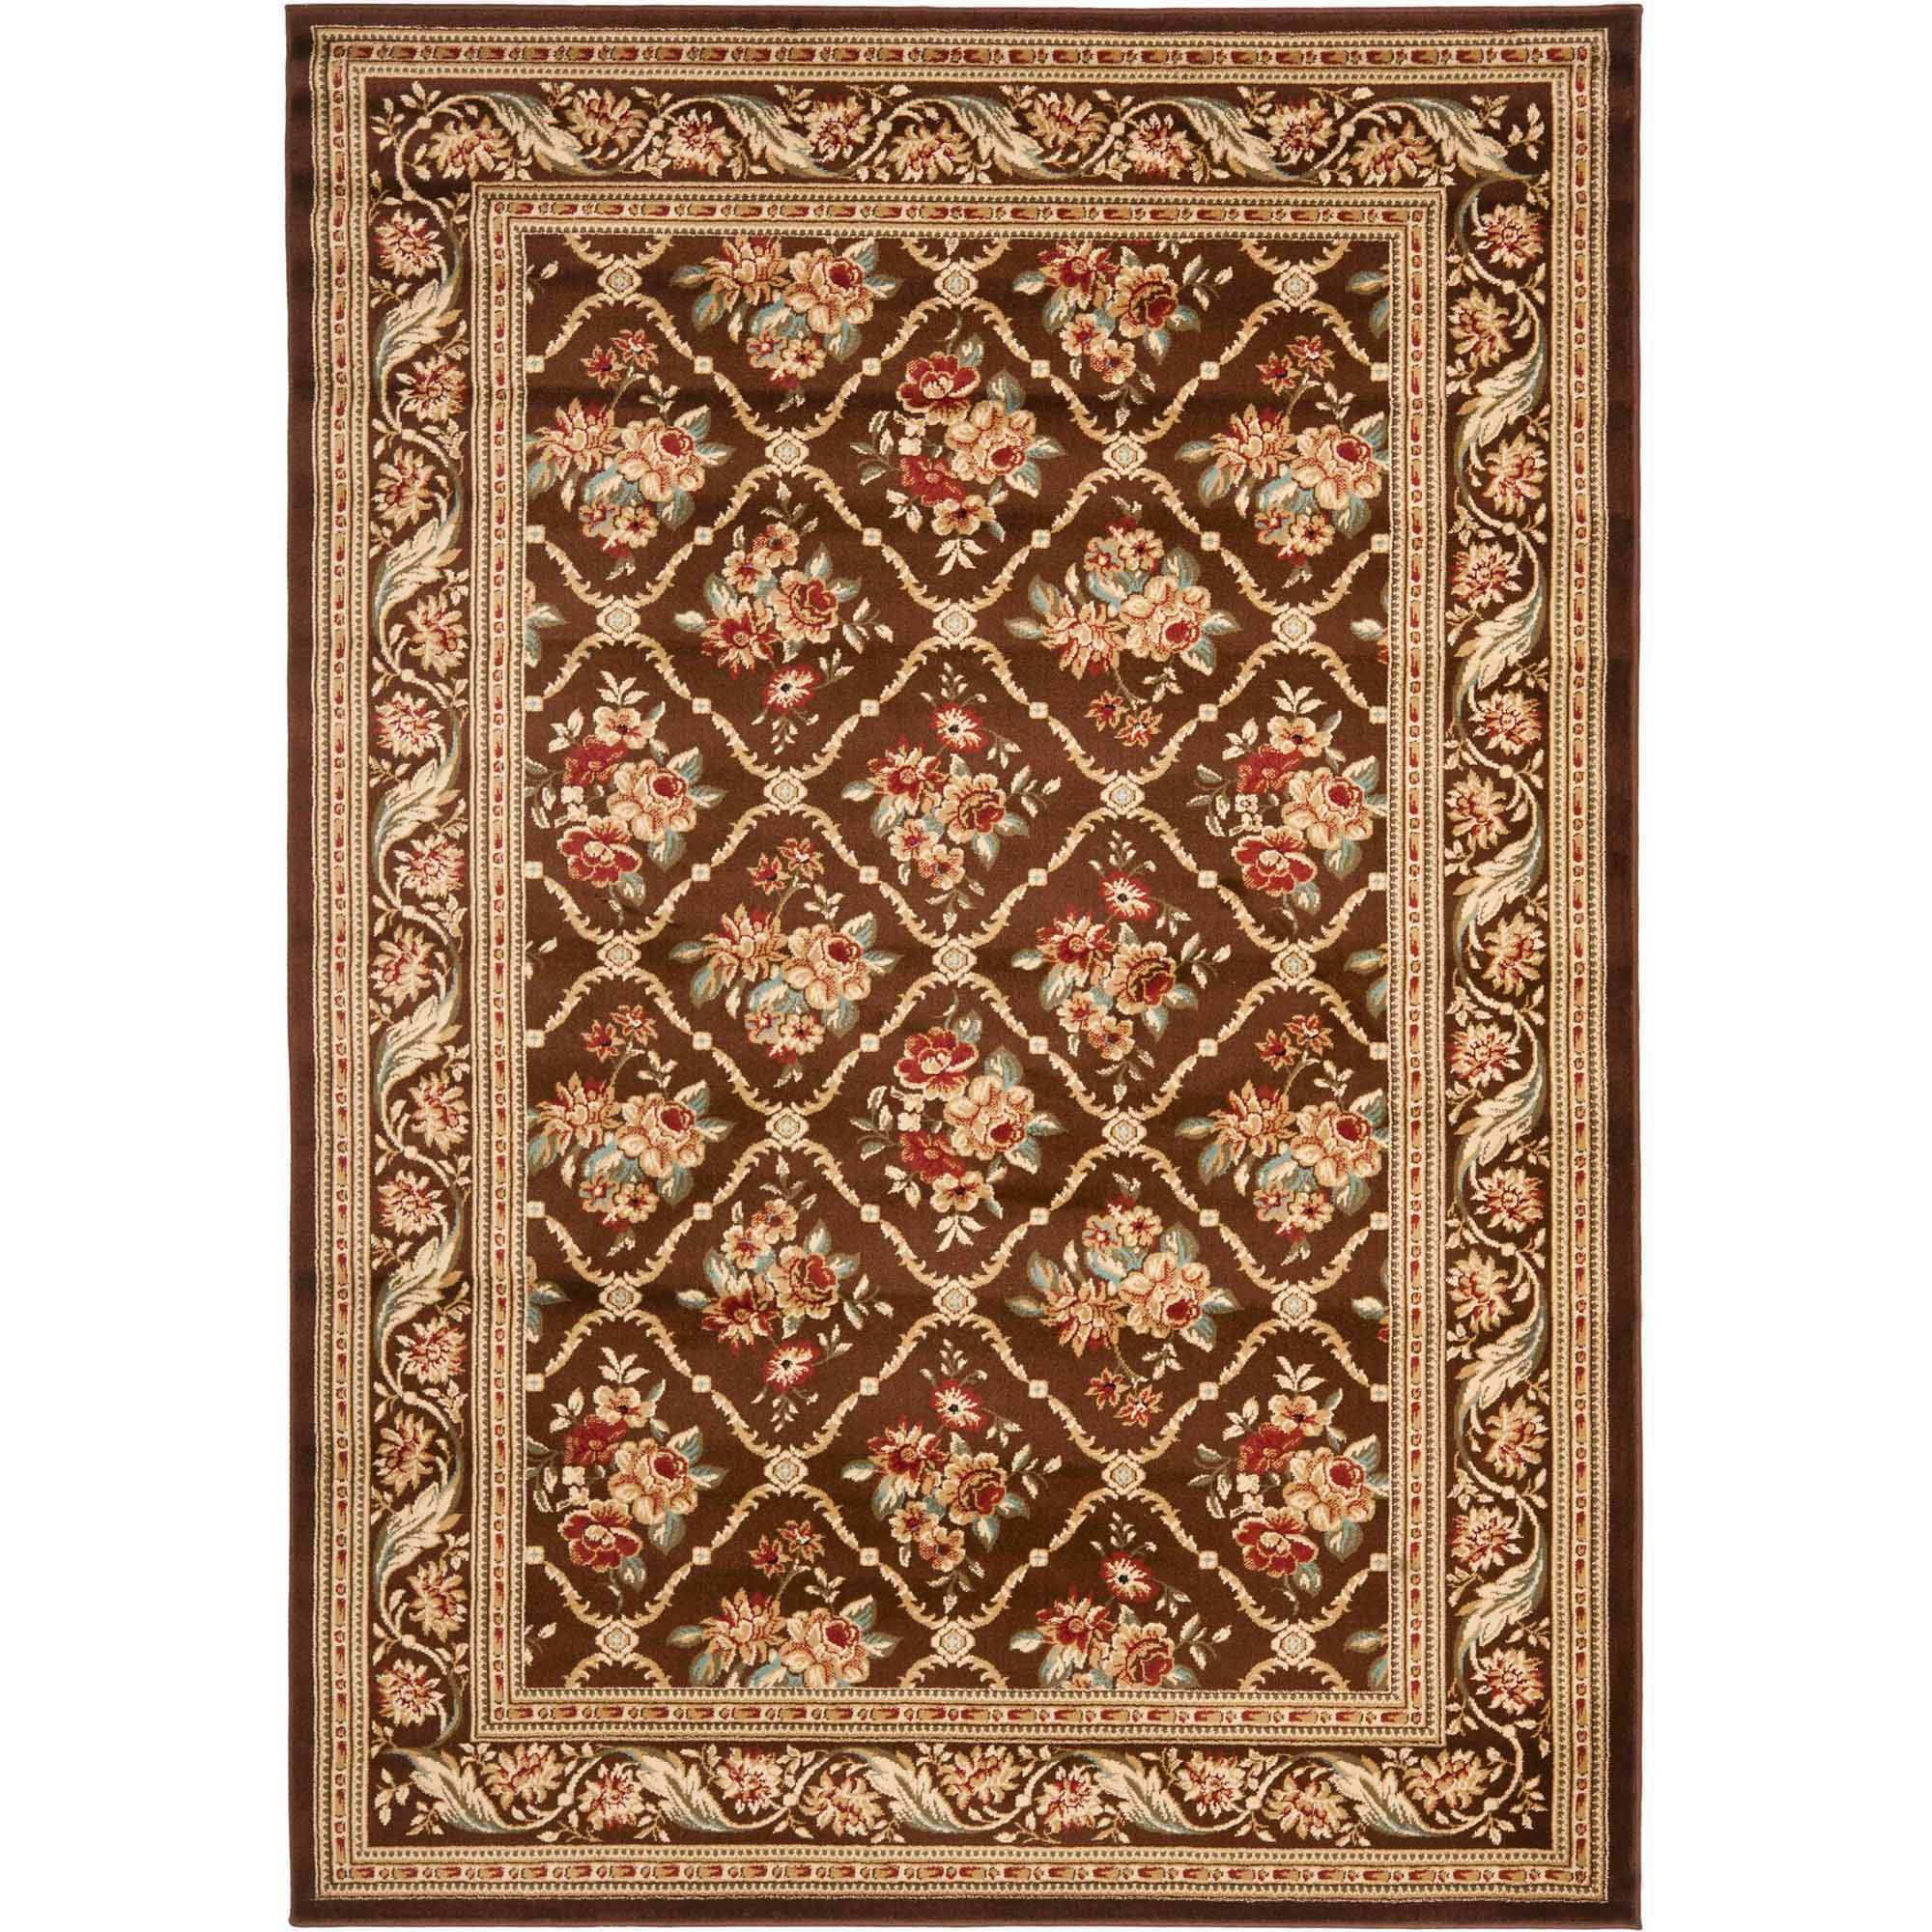 Safavieh Lyndhurst Mason Floral Border Area Rug or Runner